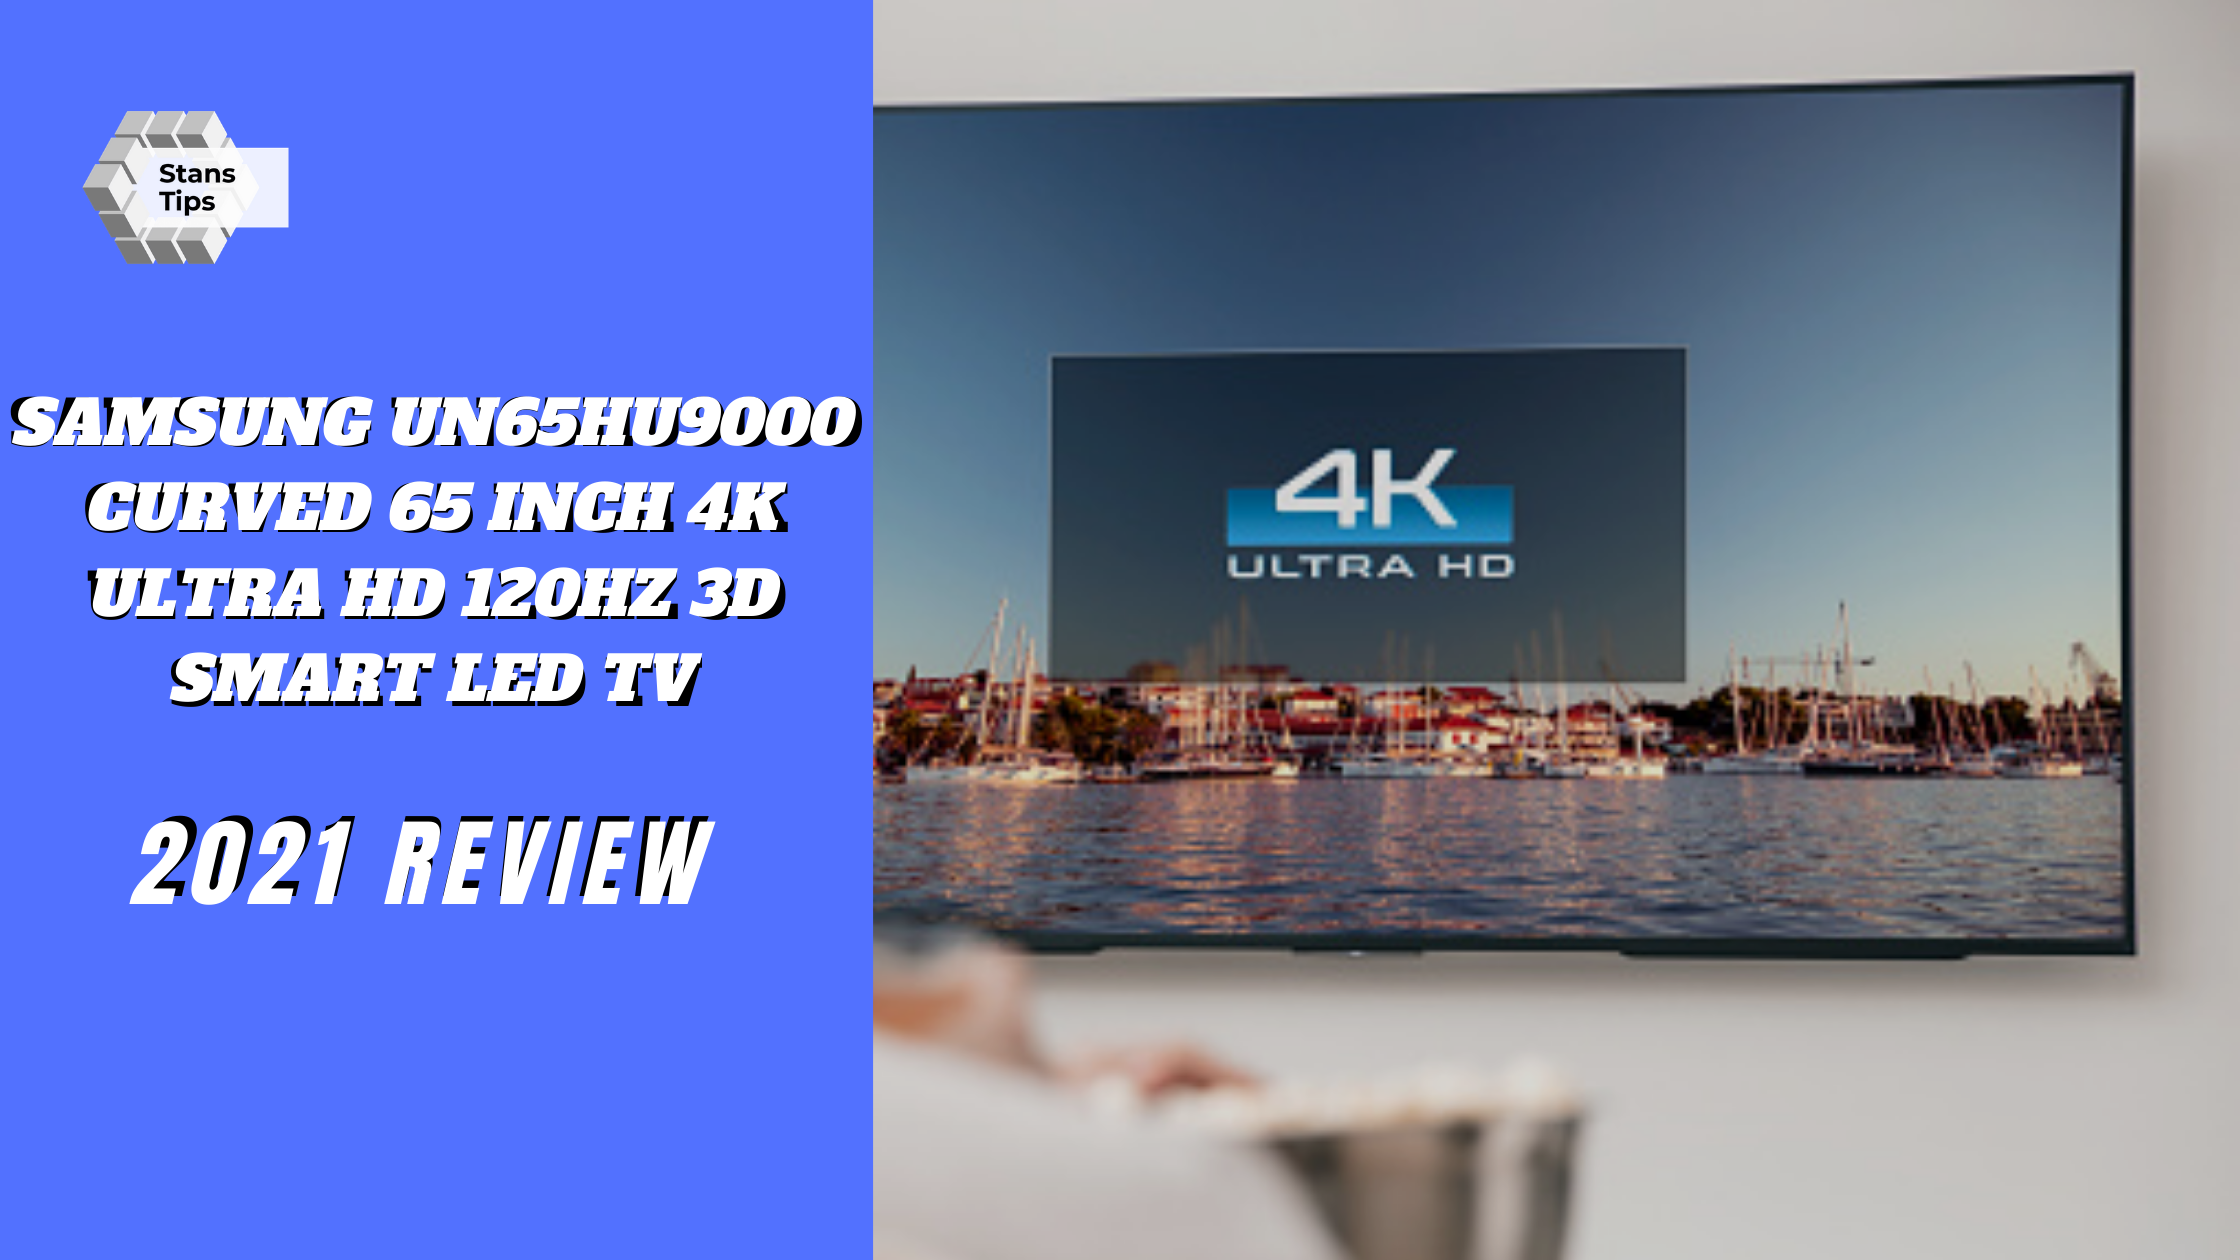 Samsung un65hu9000 curved 65 inch 4k ultra hd 120hz 3d smart led tv review